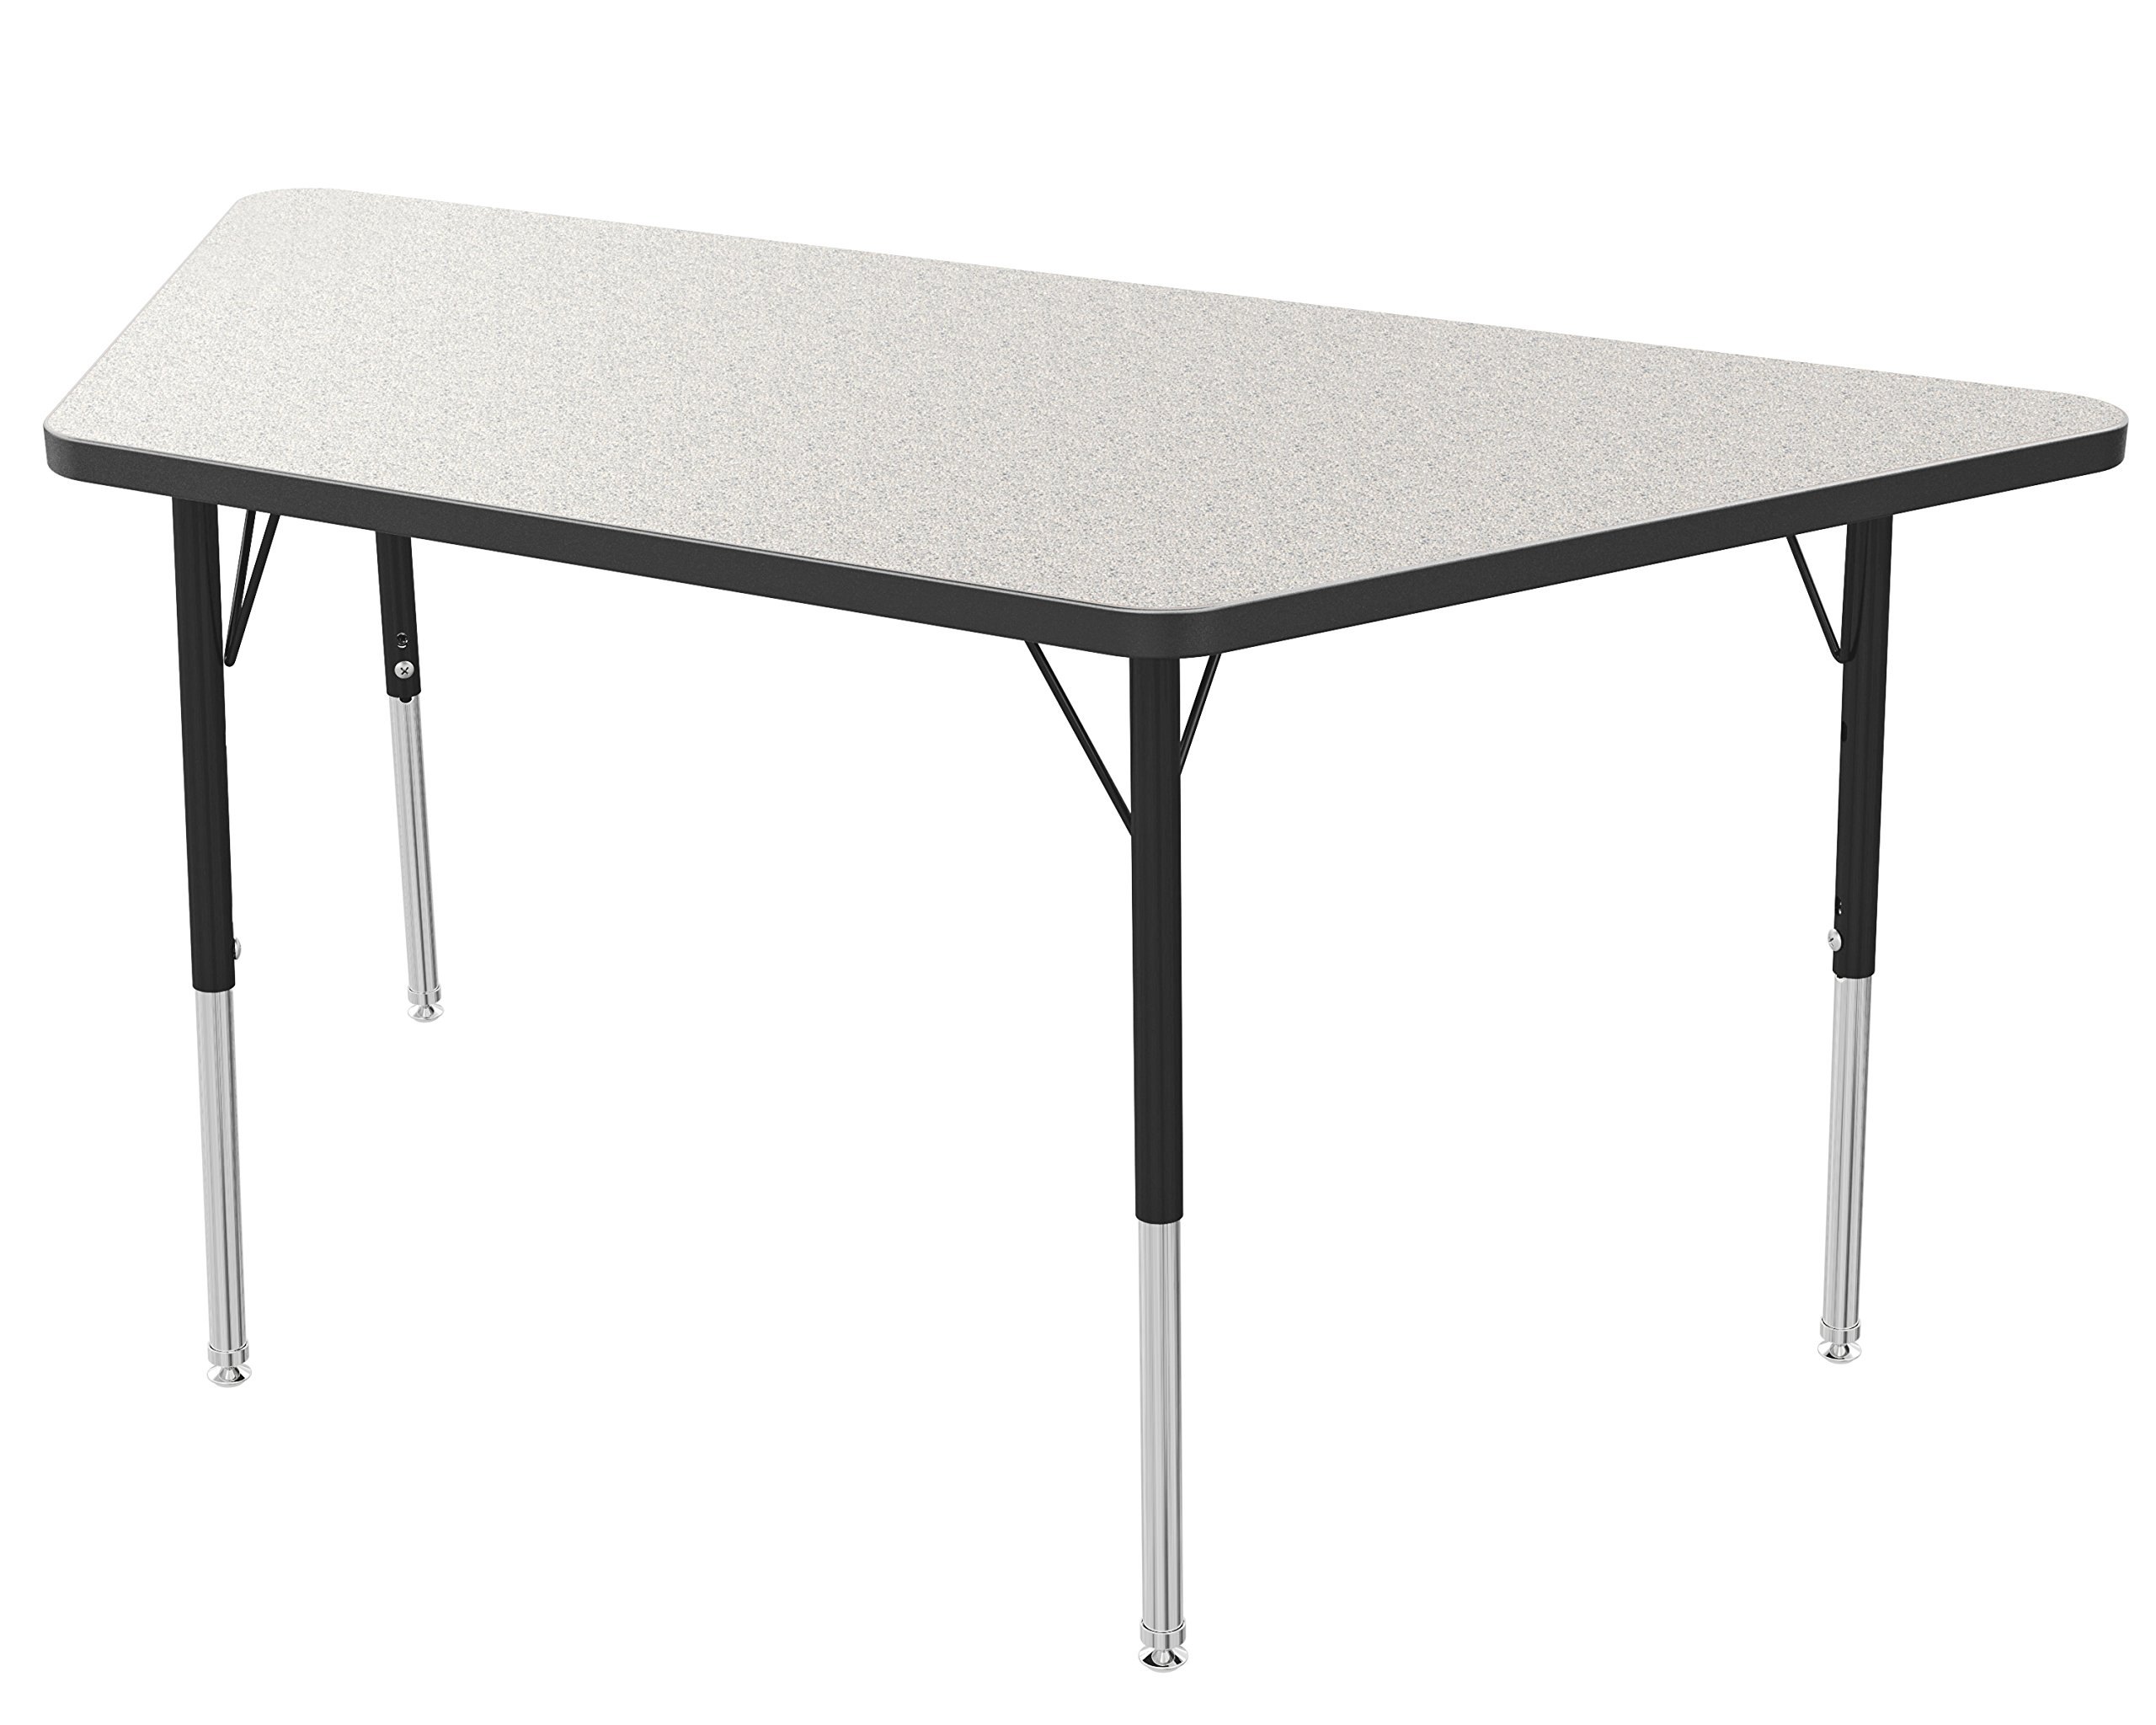 Marco Group Trapezoid Adjustable Activity Table, 24'' Width x 48'' Length, Gray Glace, Black Trim, Standard Legs